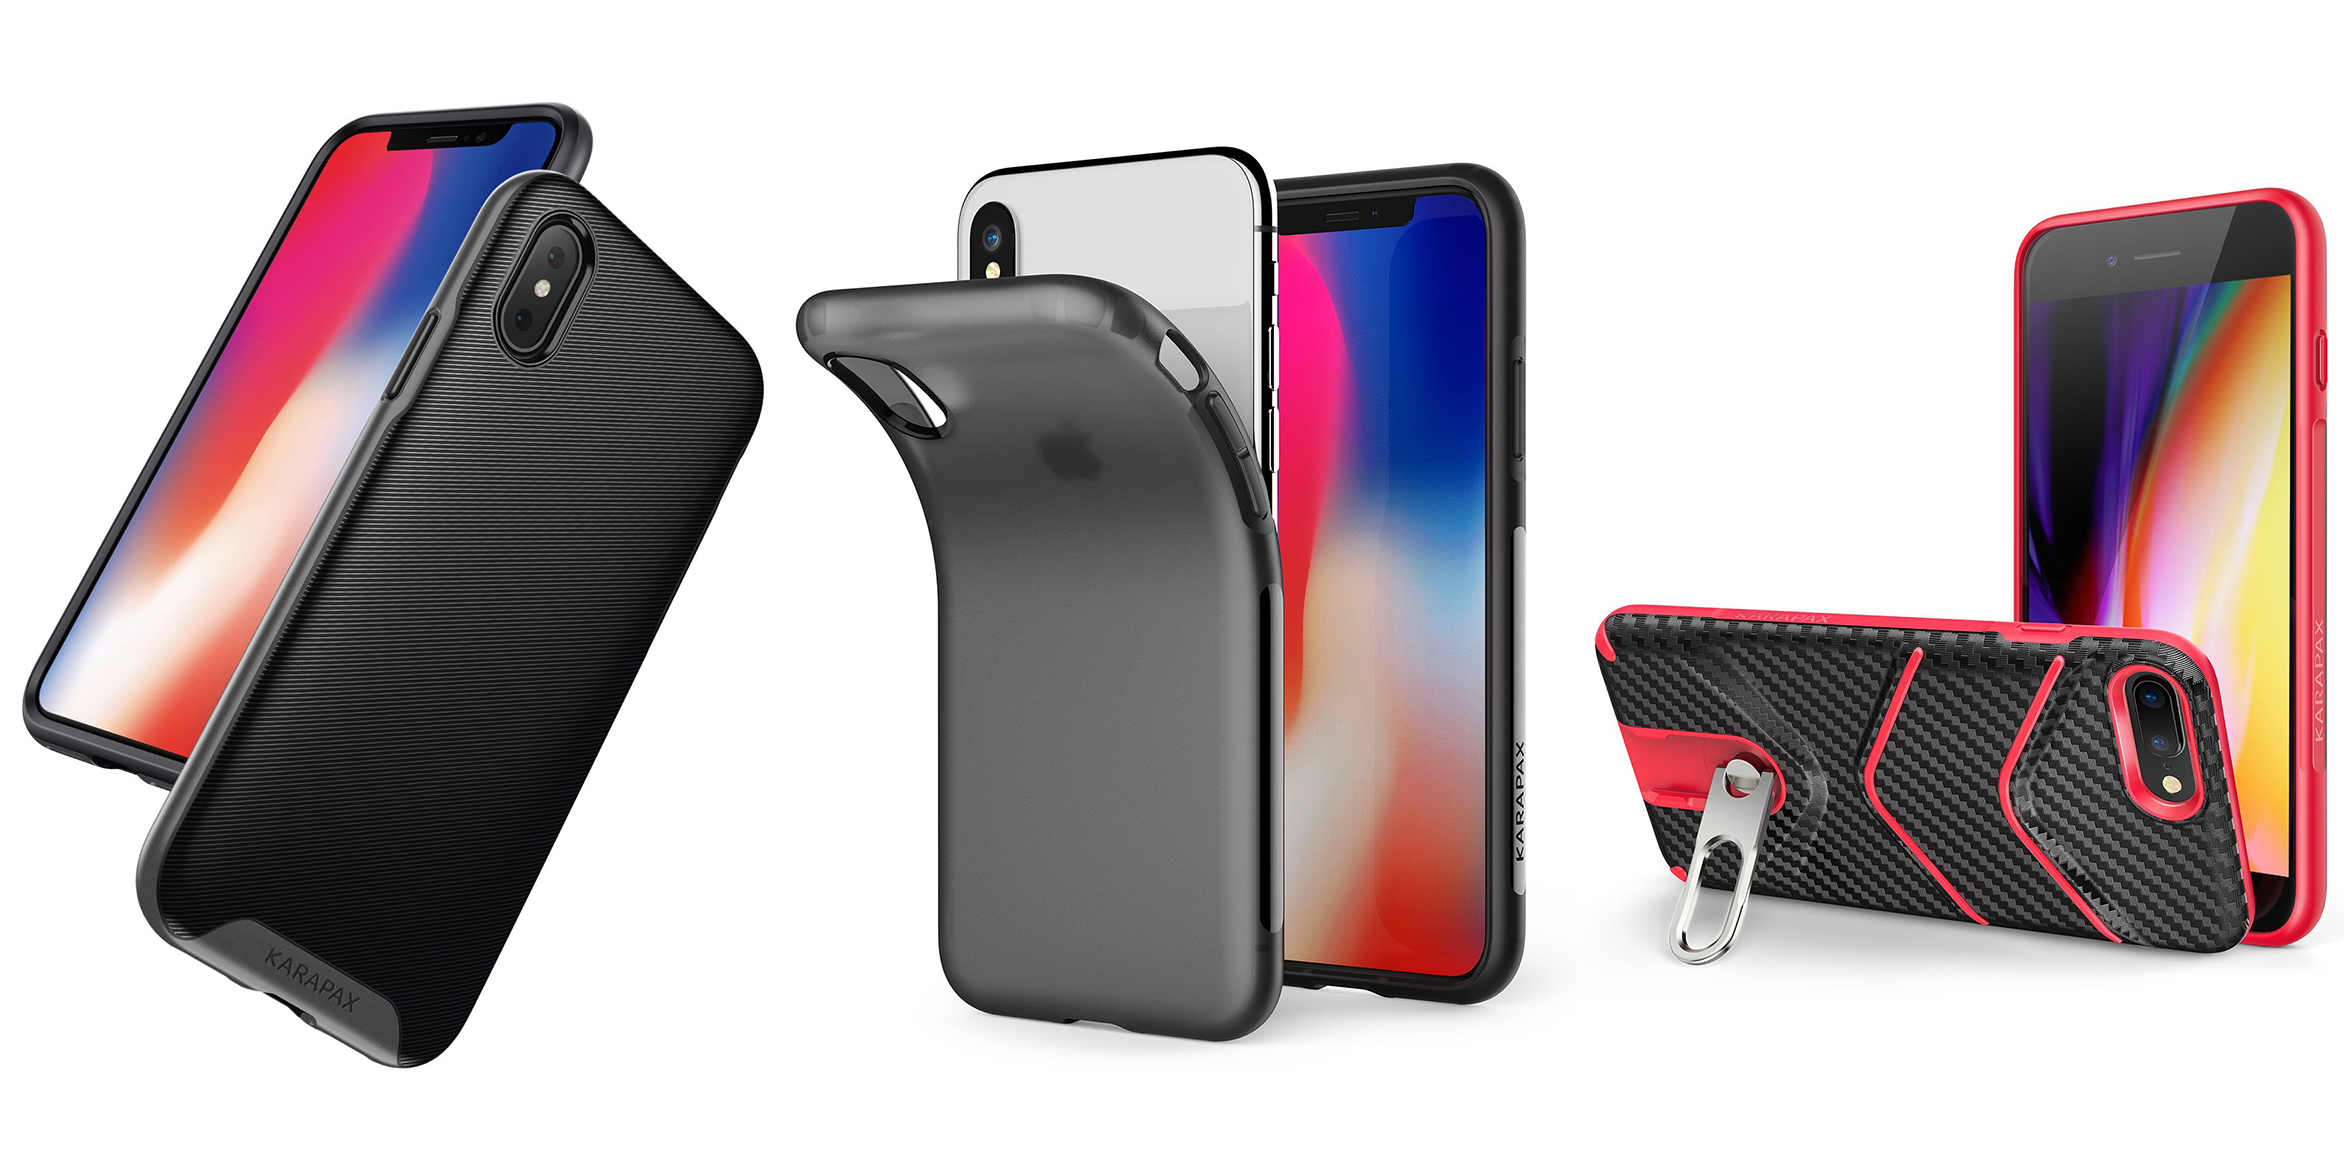 Anker iPhone X and 7/8/Plus cases for $4 in a variety of styles ...